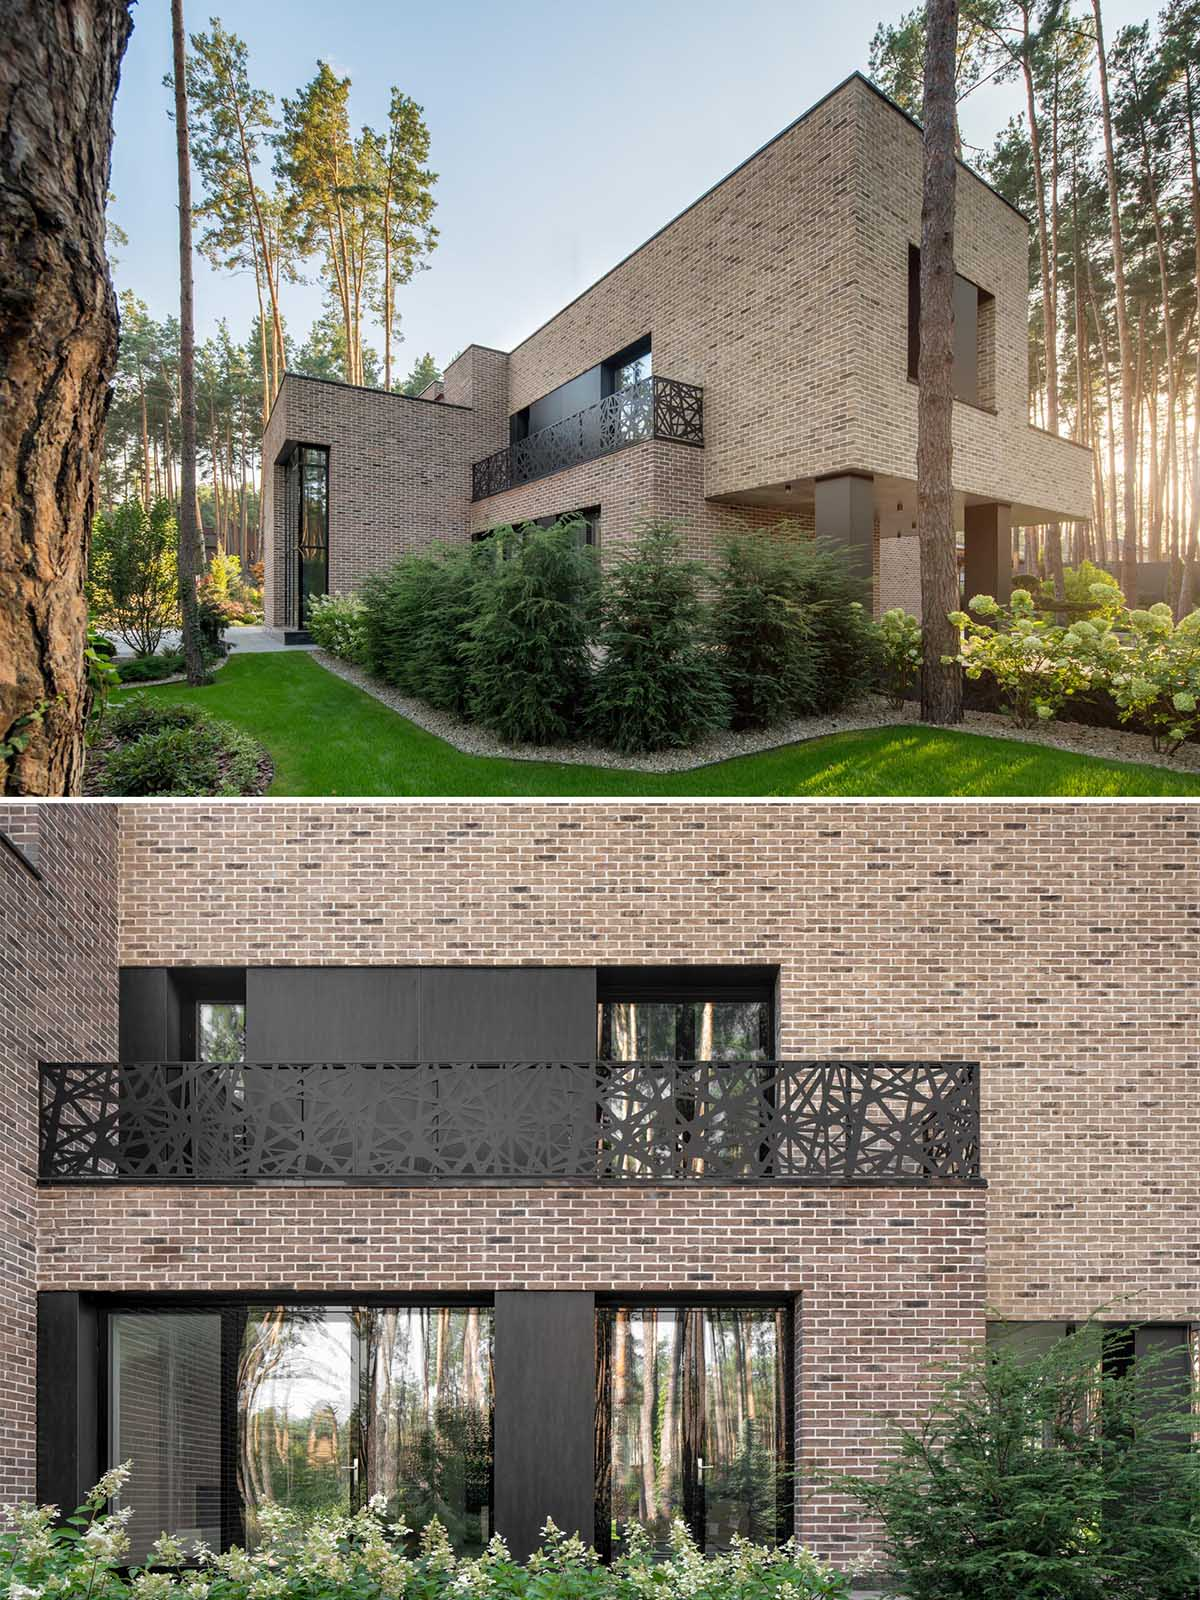 Complementing and contrasting the brown brick of this home are the black steel window frames, panels, and balcony railing.